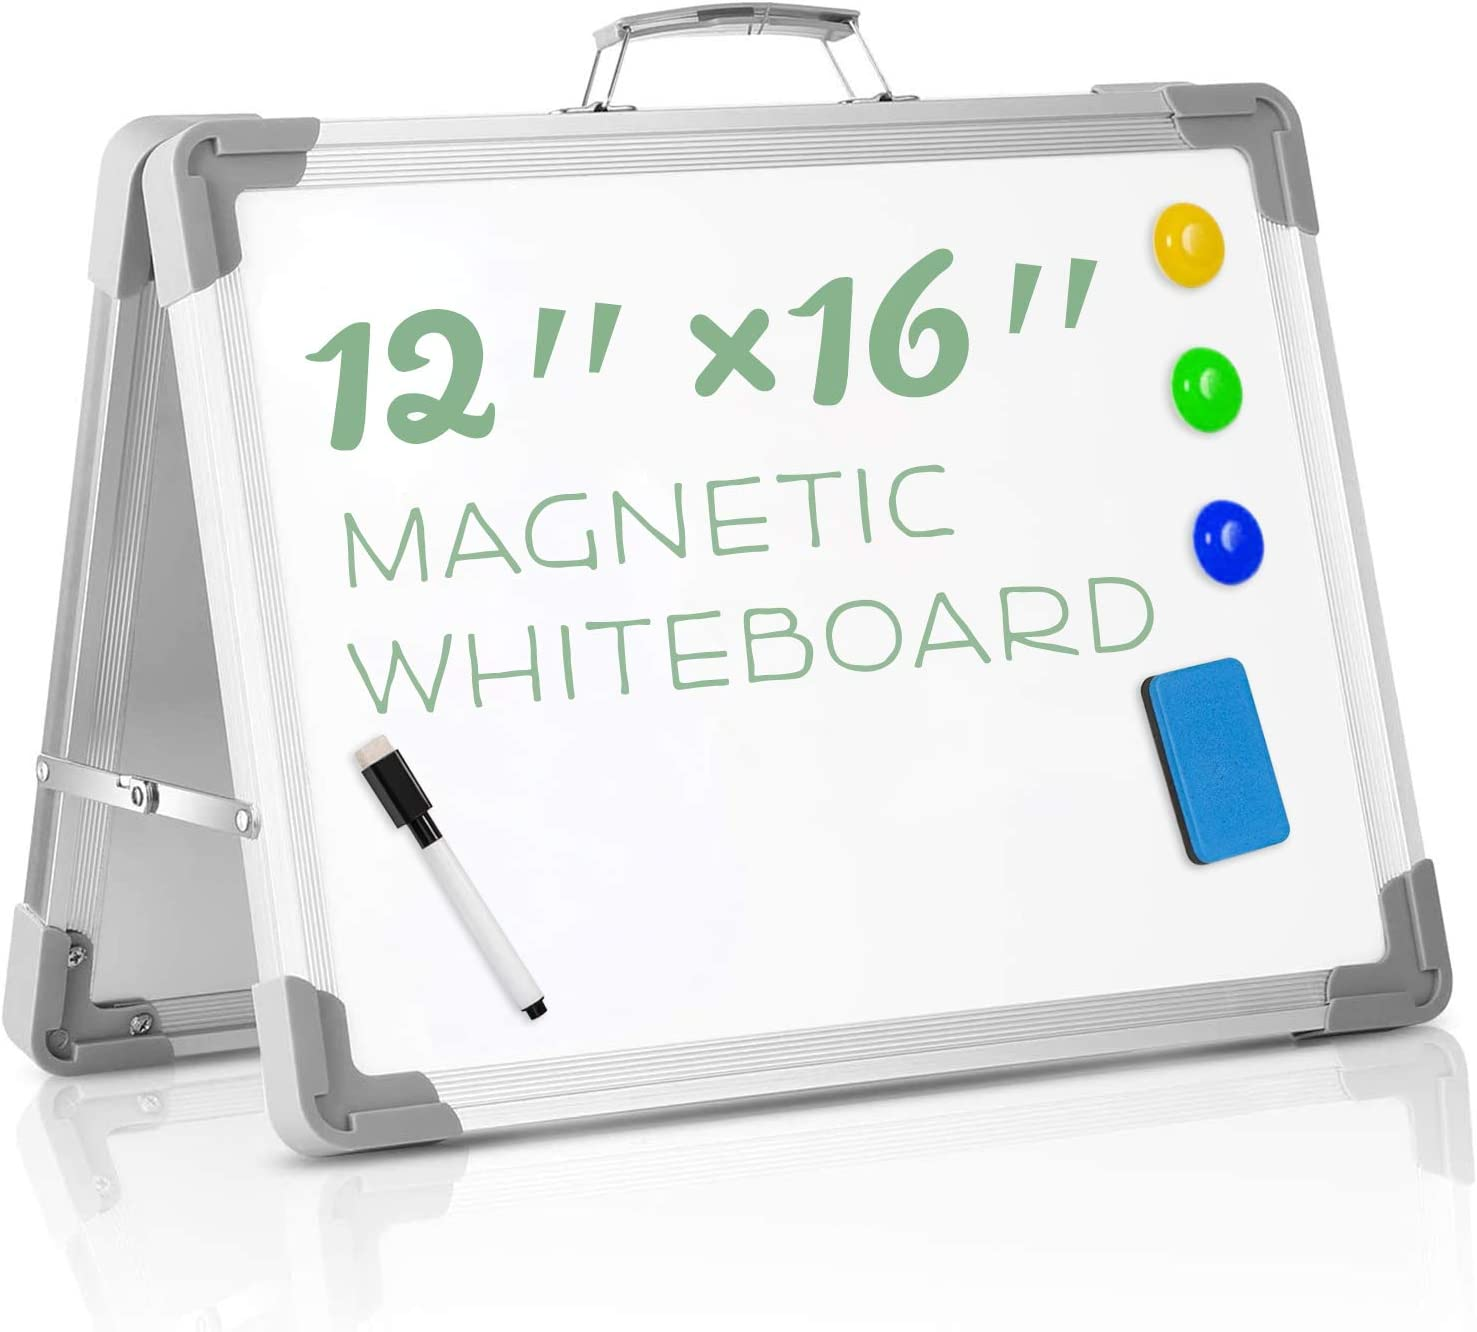 DOZZZ Small Magnetic Whiteboard with Double-Side and Marker for Kids Drawing and Teacher Instruction